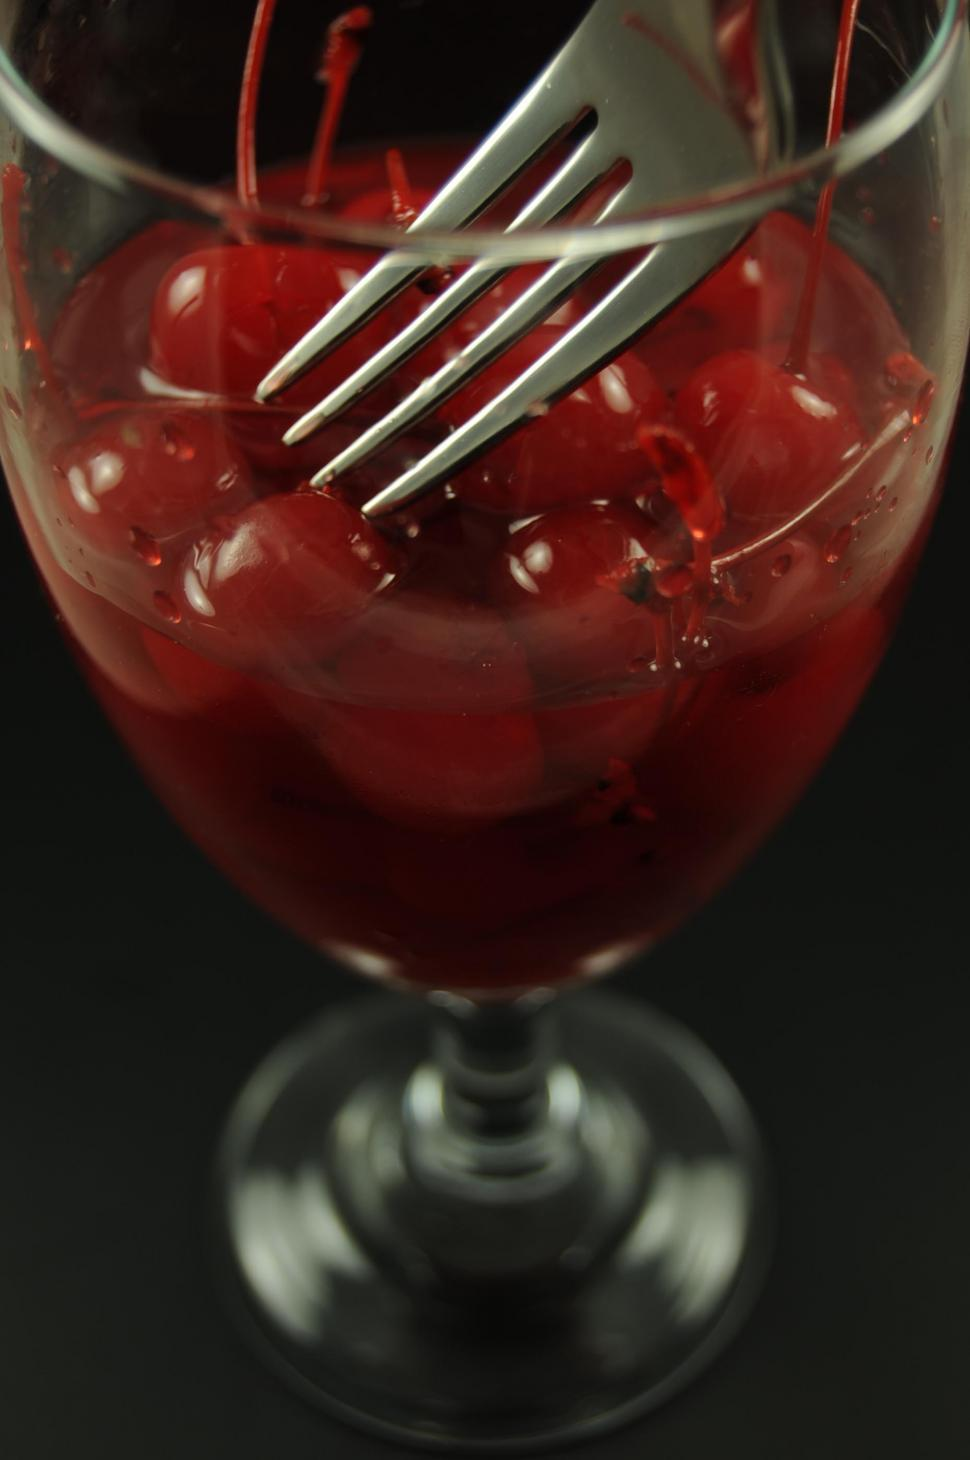 Download Free Stock HD Photo of Maraschino cherries Online